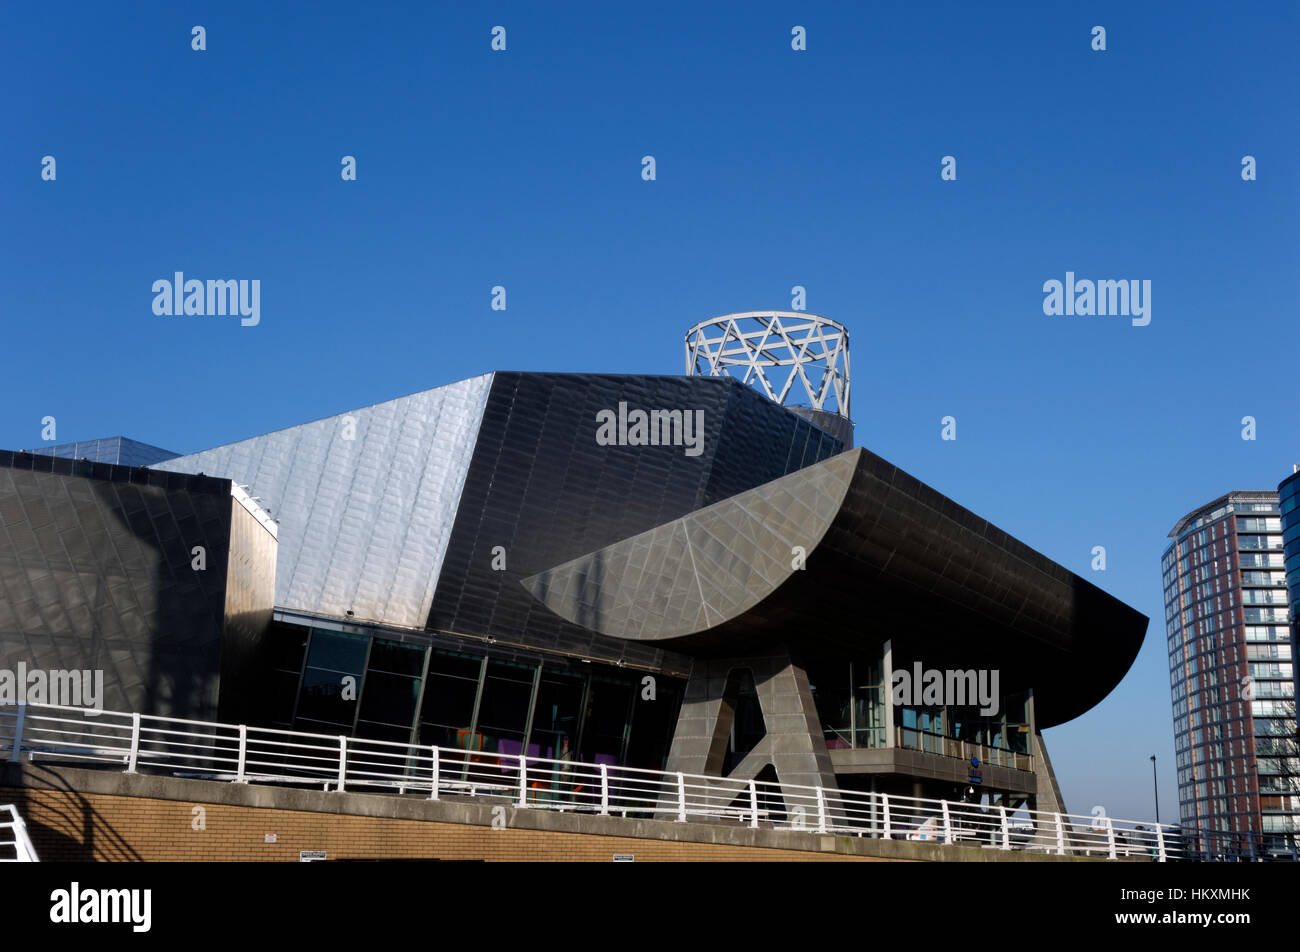 The Lowry, Salford Quays, Salford, Manchester, UK. - Stock Image